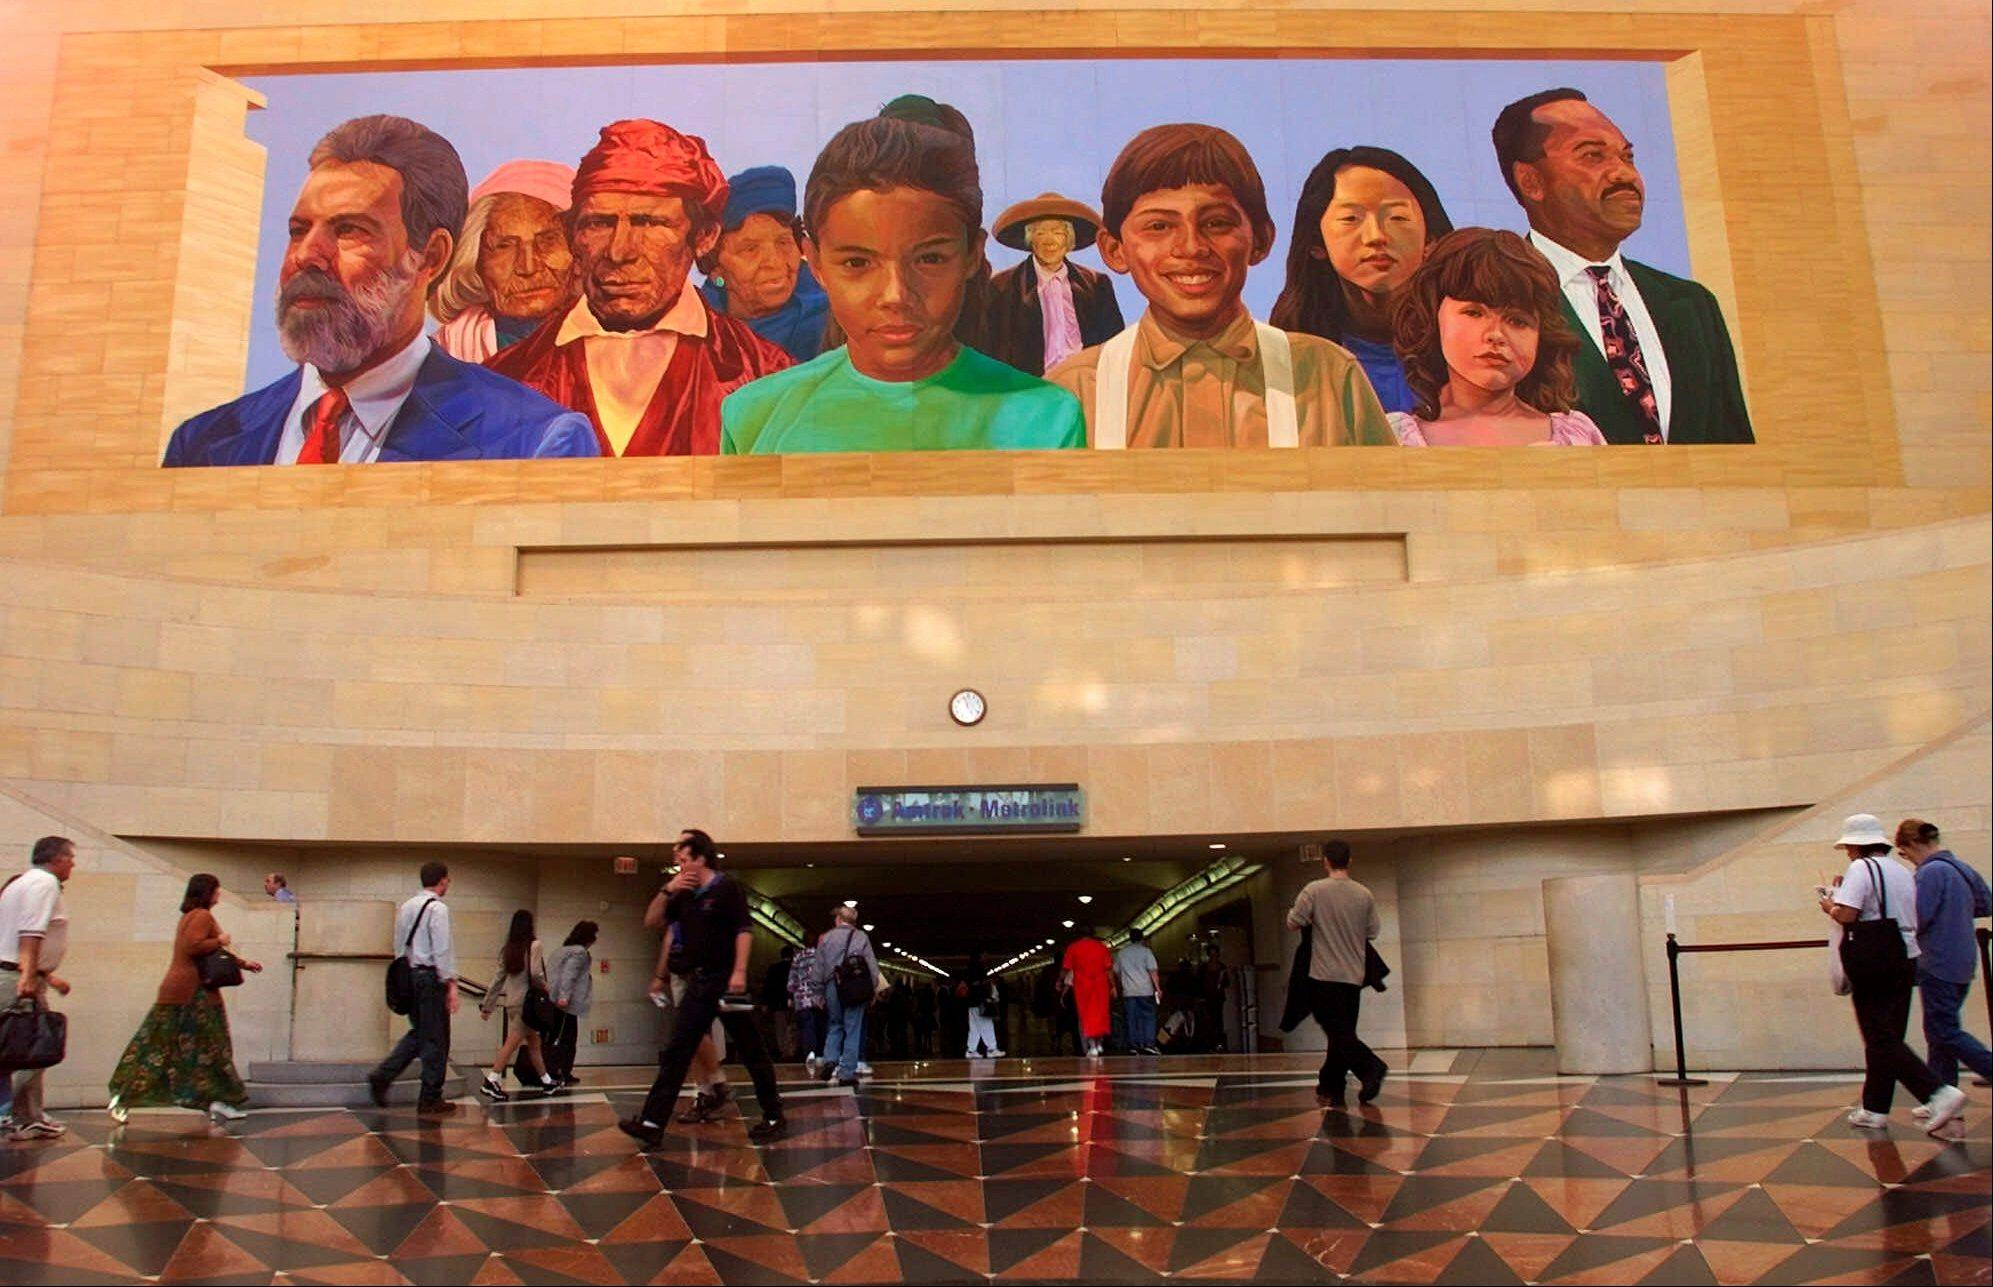 "Commuters walk into a tunnel at Los Angeles's Amtrack-Metrolink Union Station under the mural ""City of Dreams/River of History"" by artist Richard Wyatt, showing the diversity of California's population."